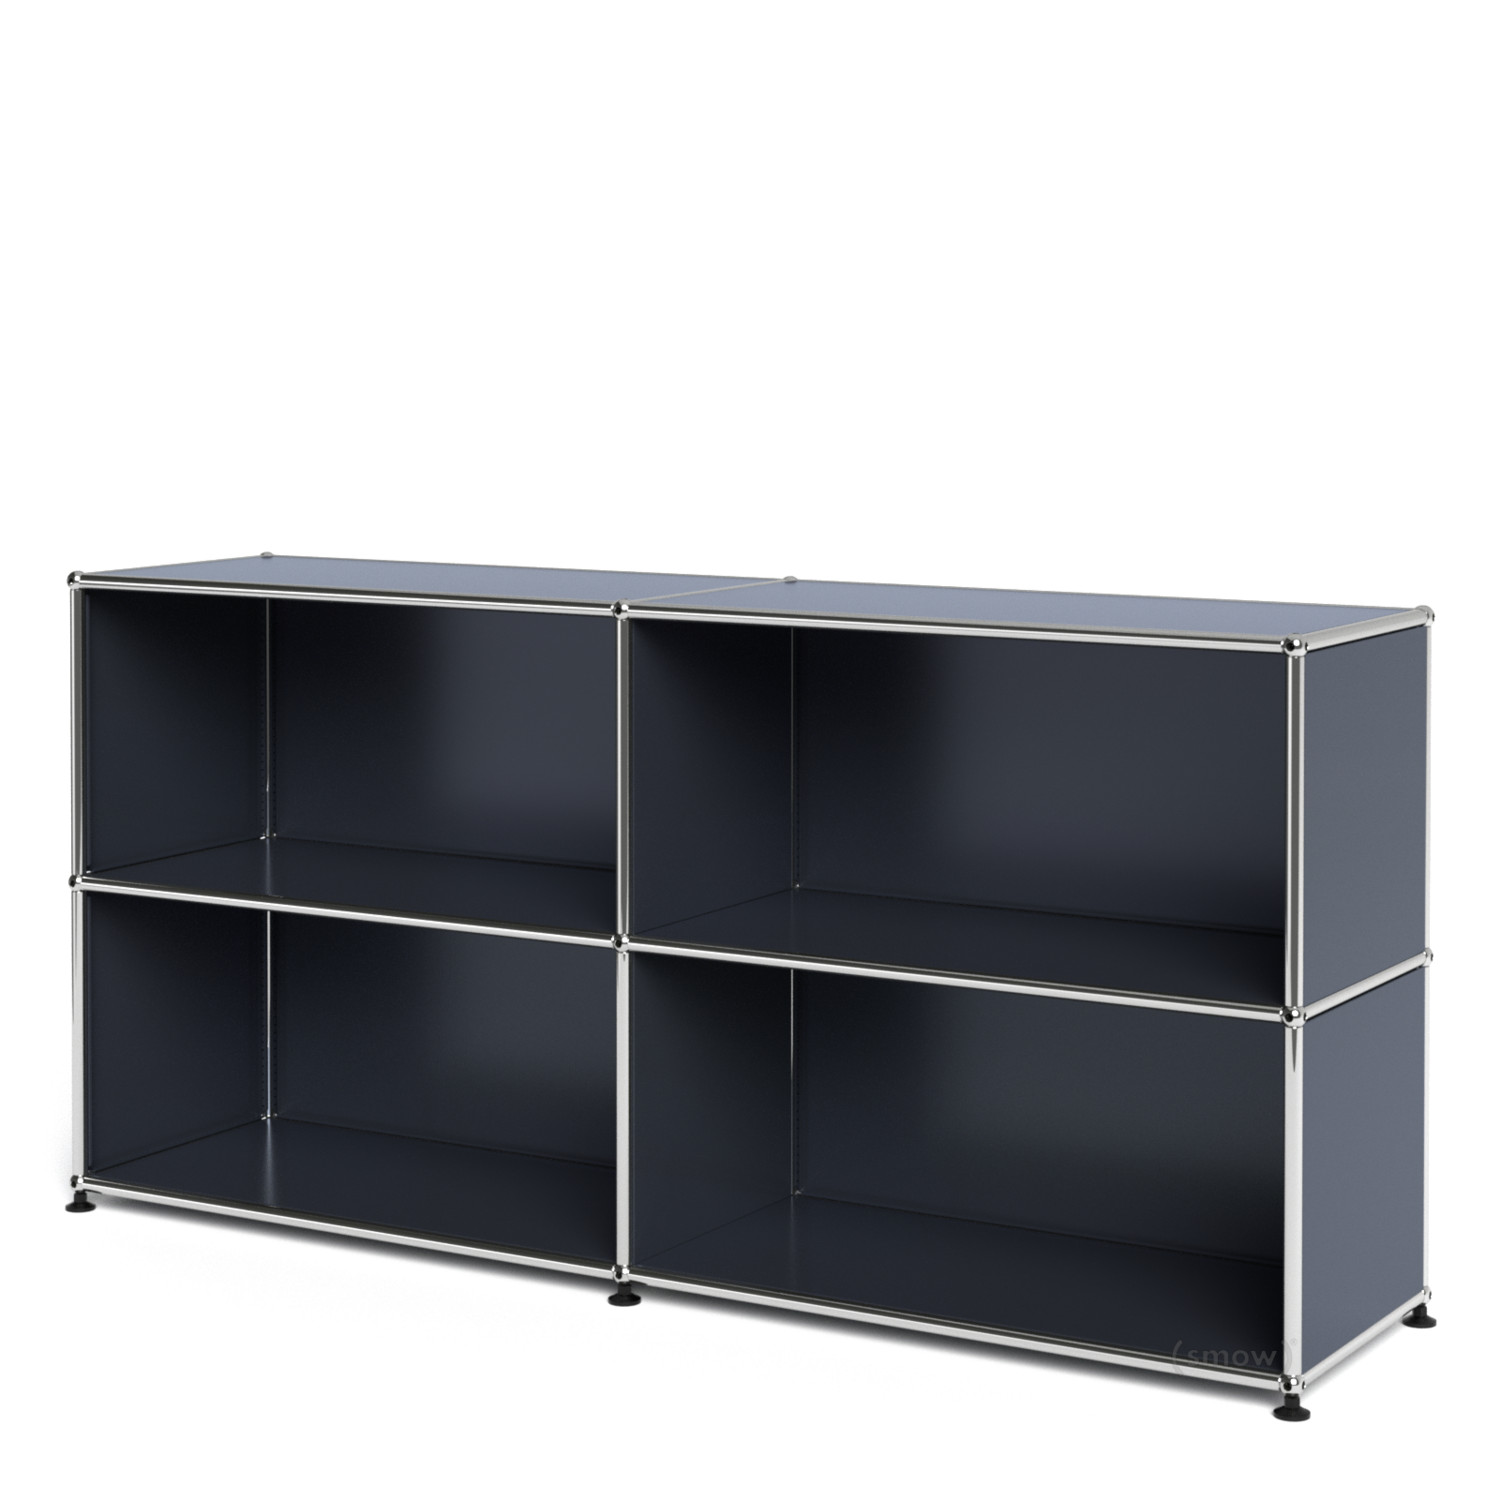 usm haller sideboard l open anthracite ral 7016 by fritz. Black Bedroom Furniture Sets. Home Design Ideas